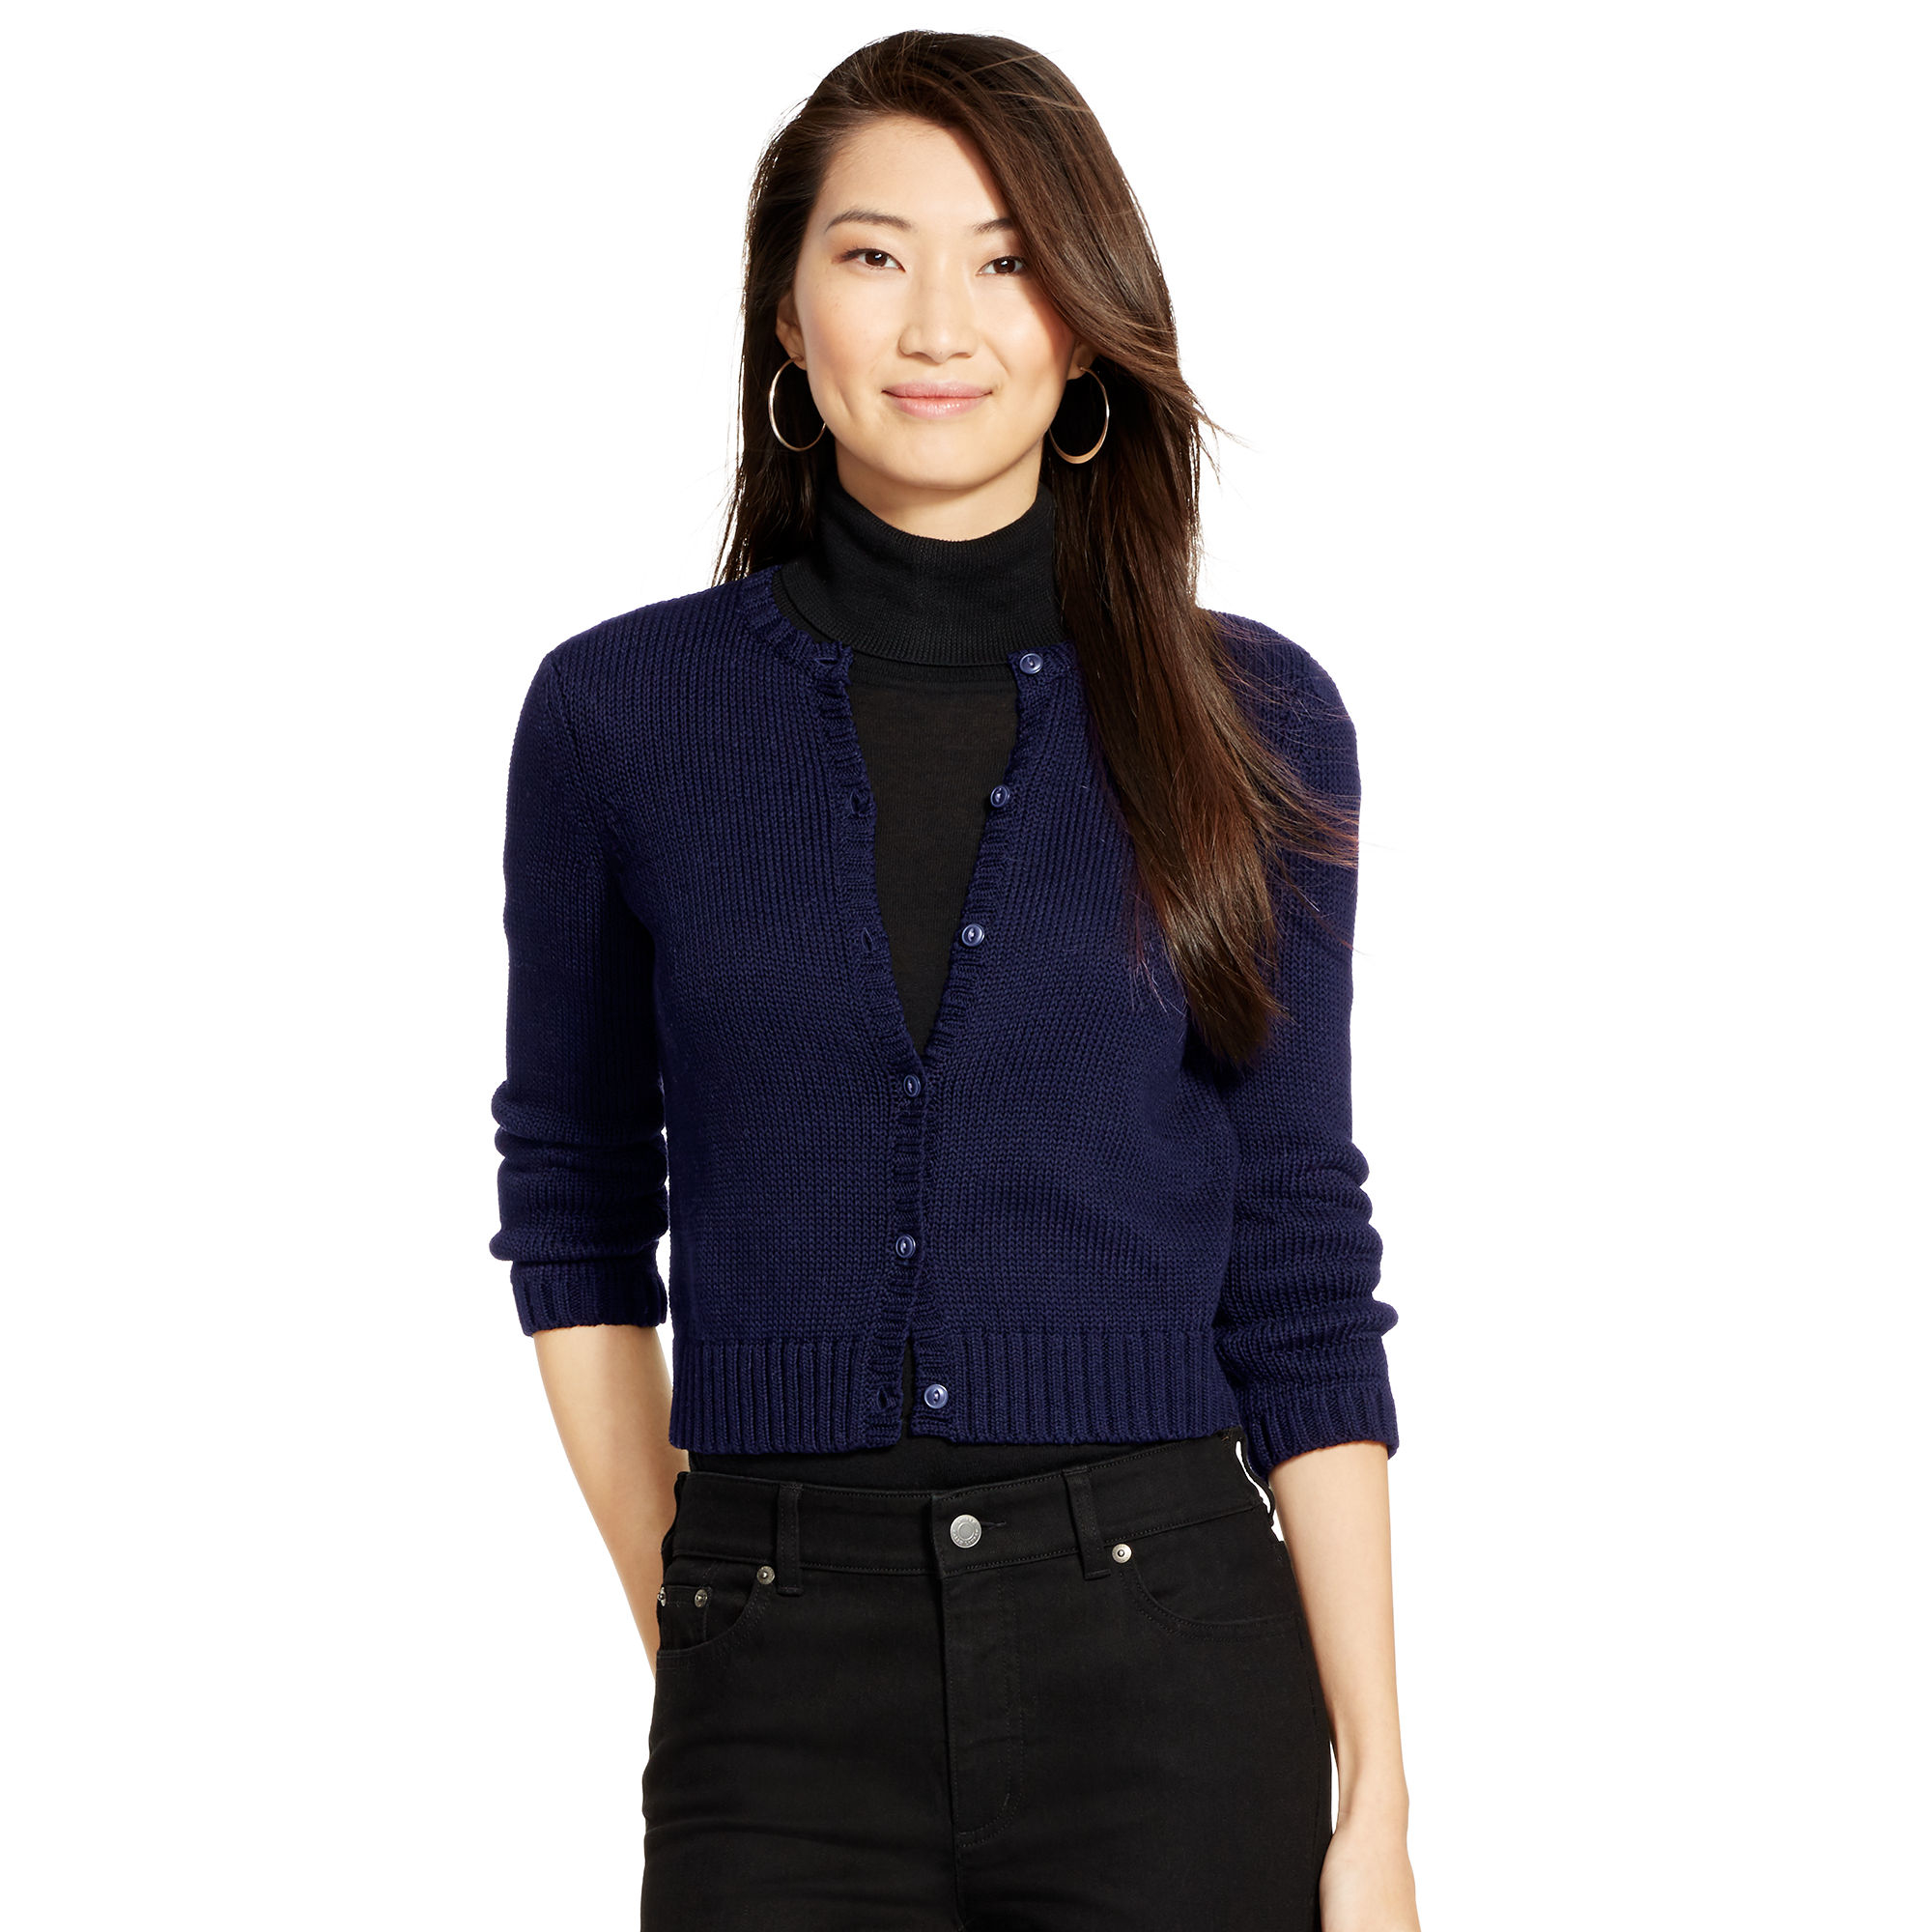 Find great deals on eBay for womens navy blue cardigan. Shop with confidence.